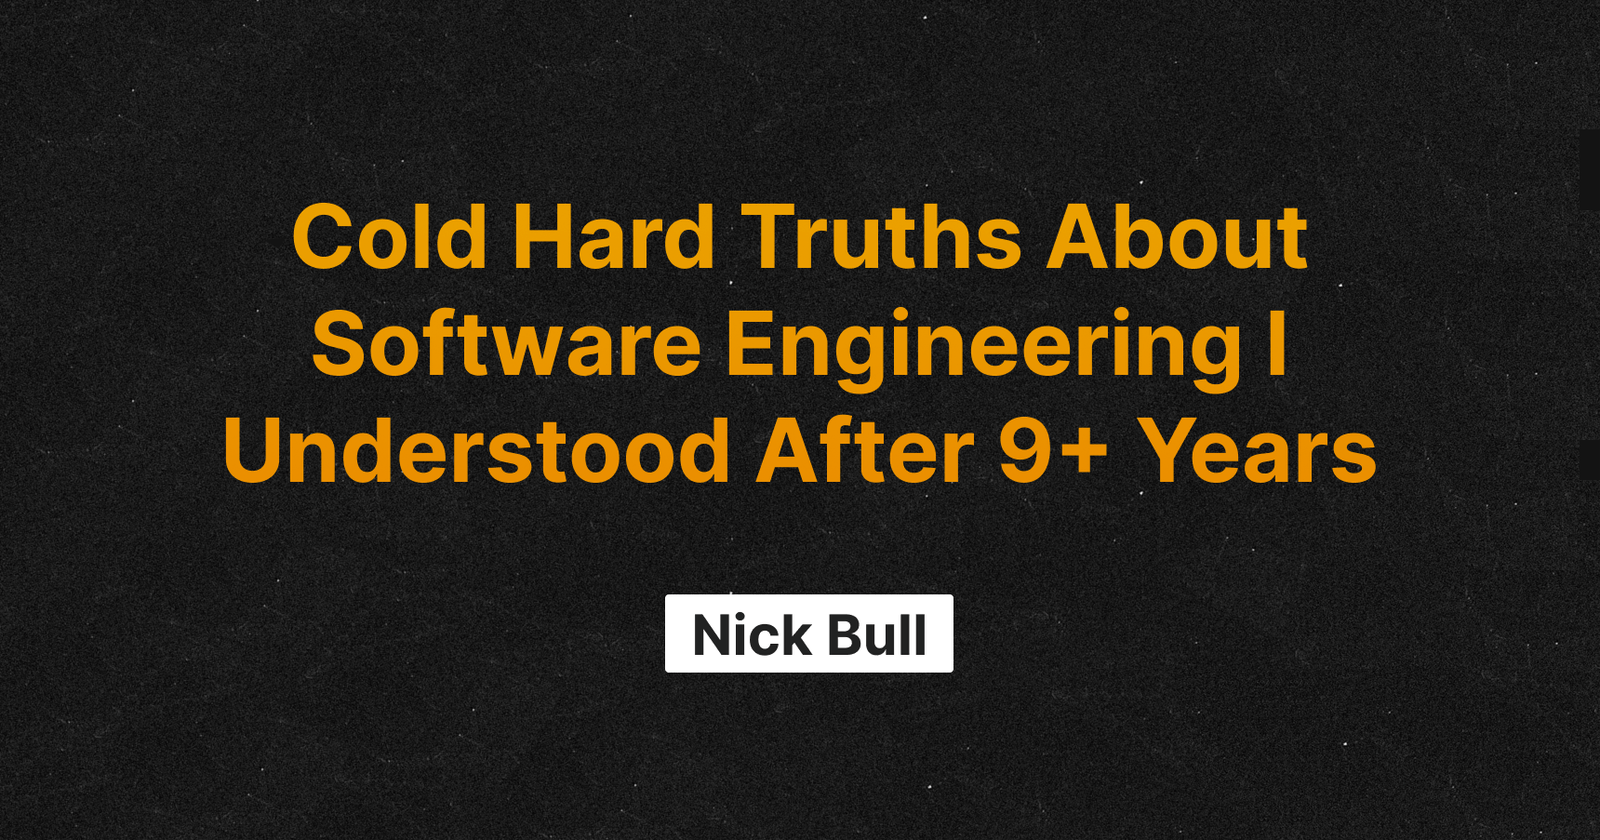 Cold Hard Truths About Software Engineering I Understood After 9+ Years